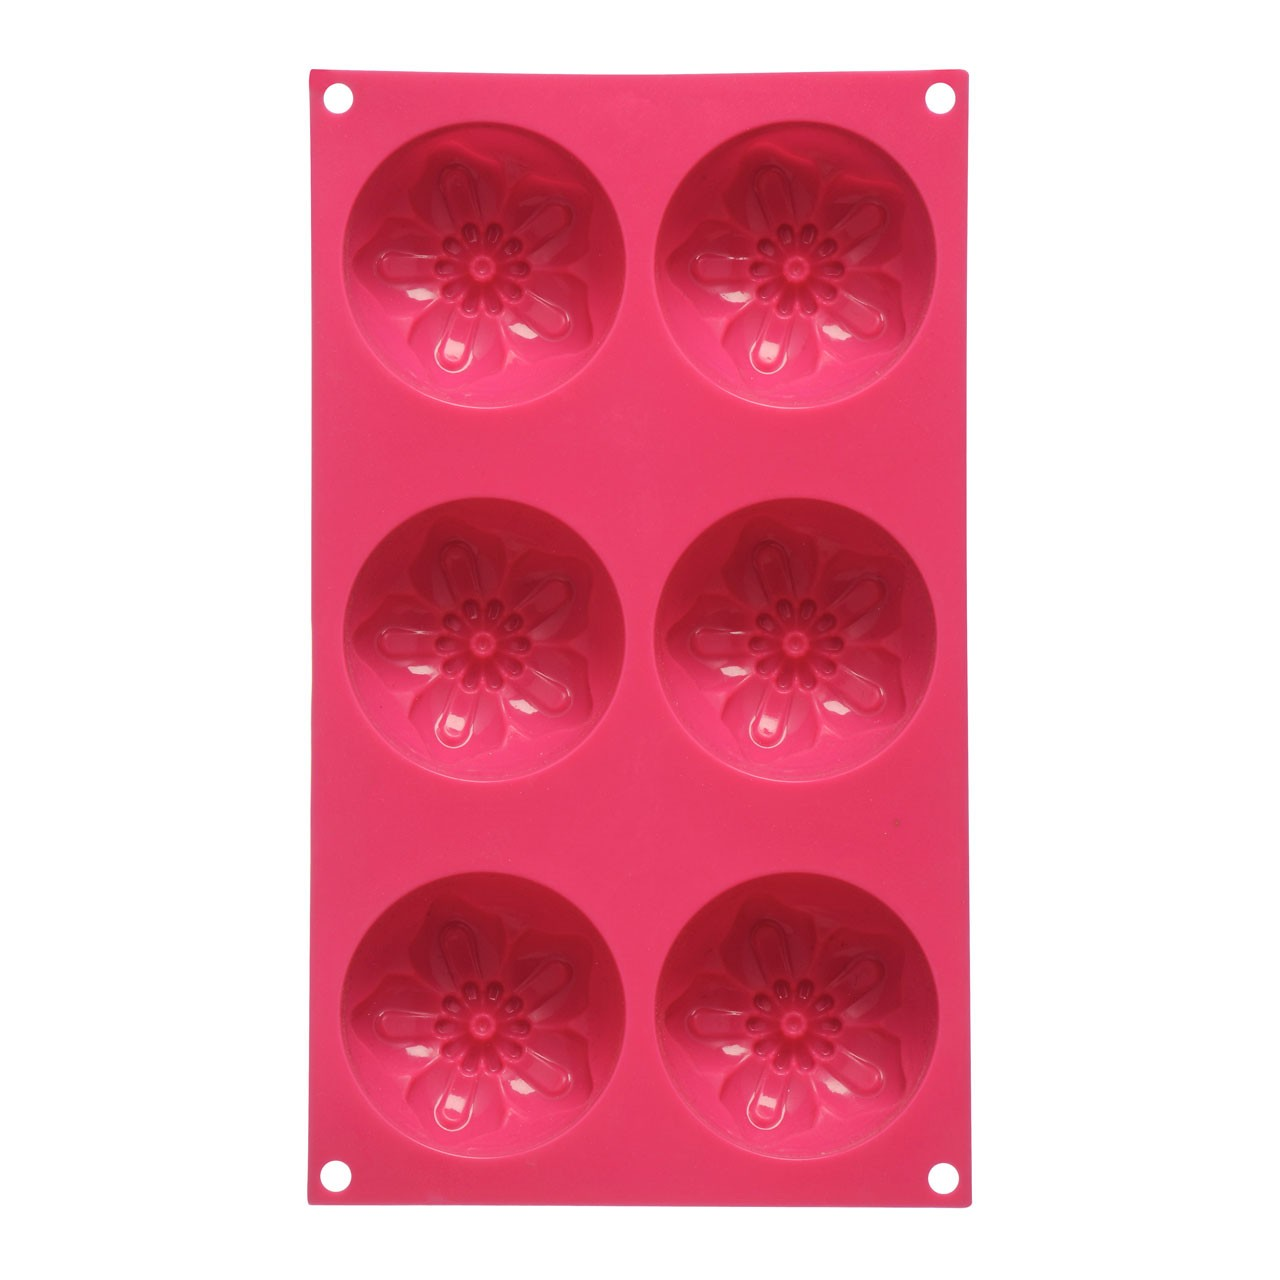 6 Flower Cake Mould Tray - Hot Pink